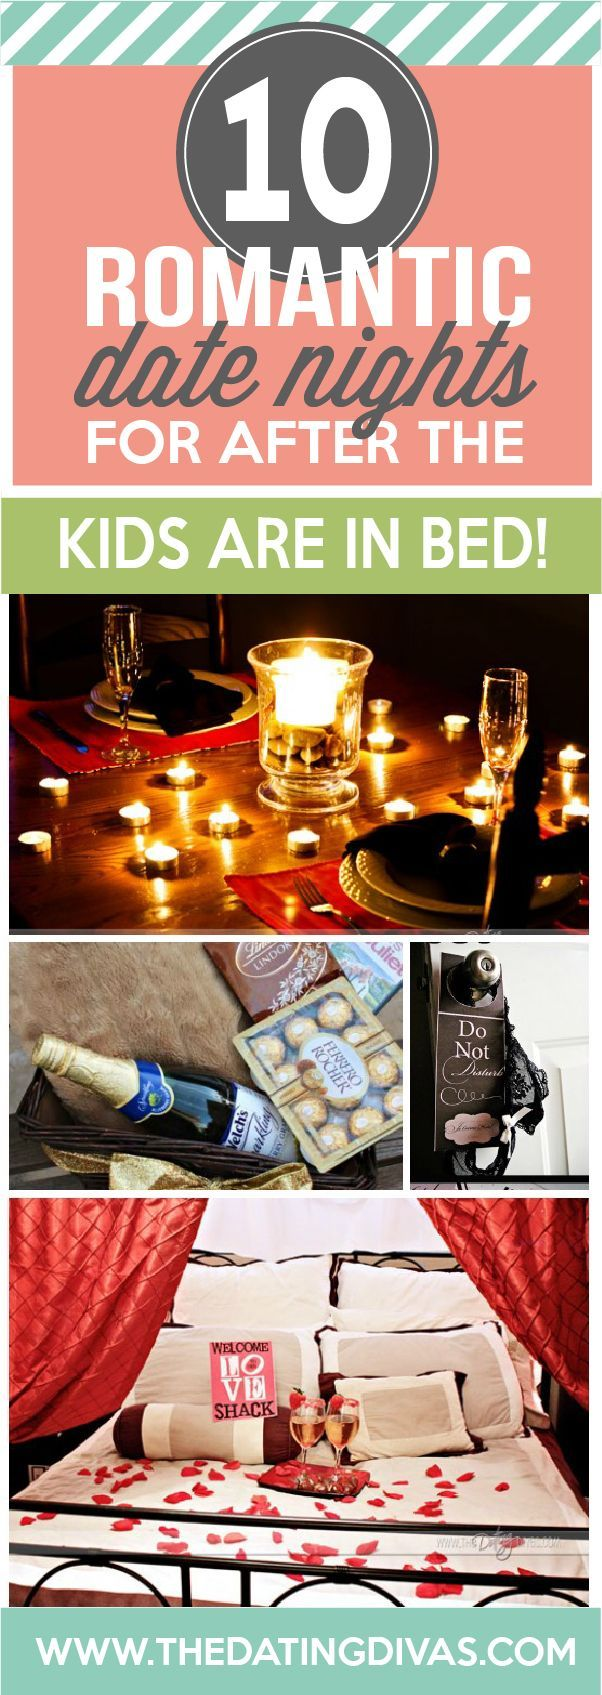 45 At Home Date Night Ideas for AFTER the Kids are in Bed 45 At Home Date Night Ideas for AFTER the Kids are in Bed  . Romantic Bedroom Games Free Online. Home Design Ideas